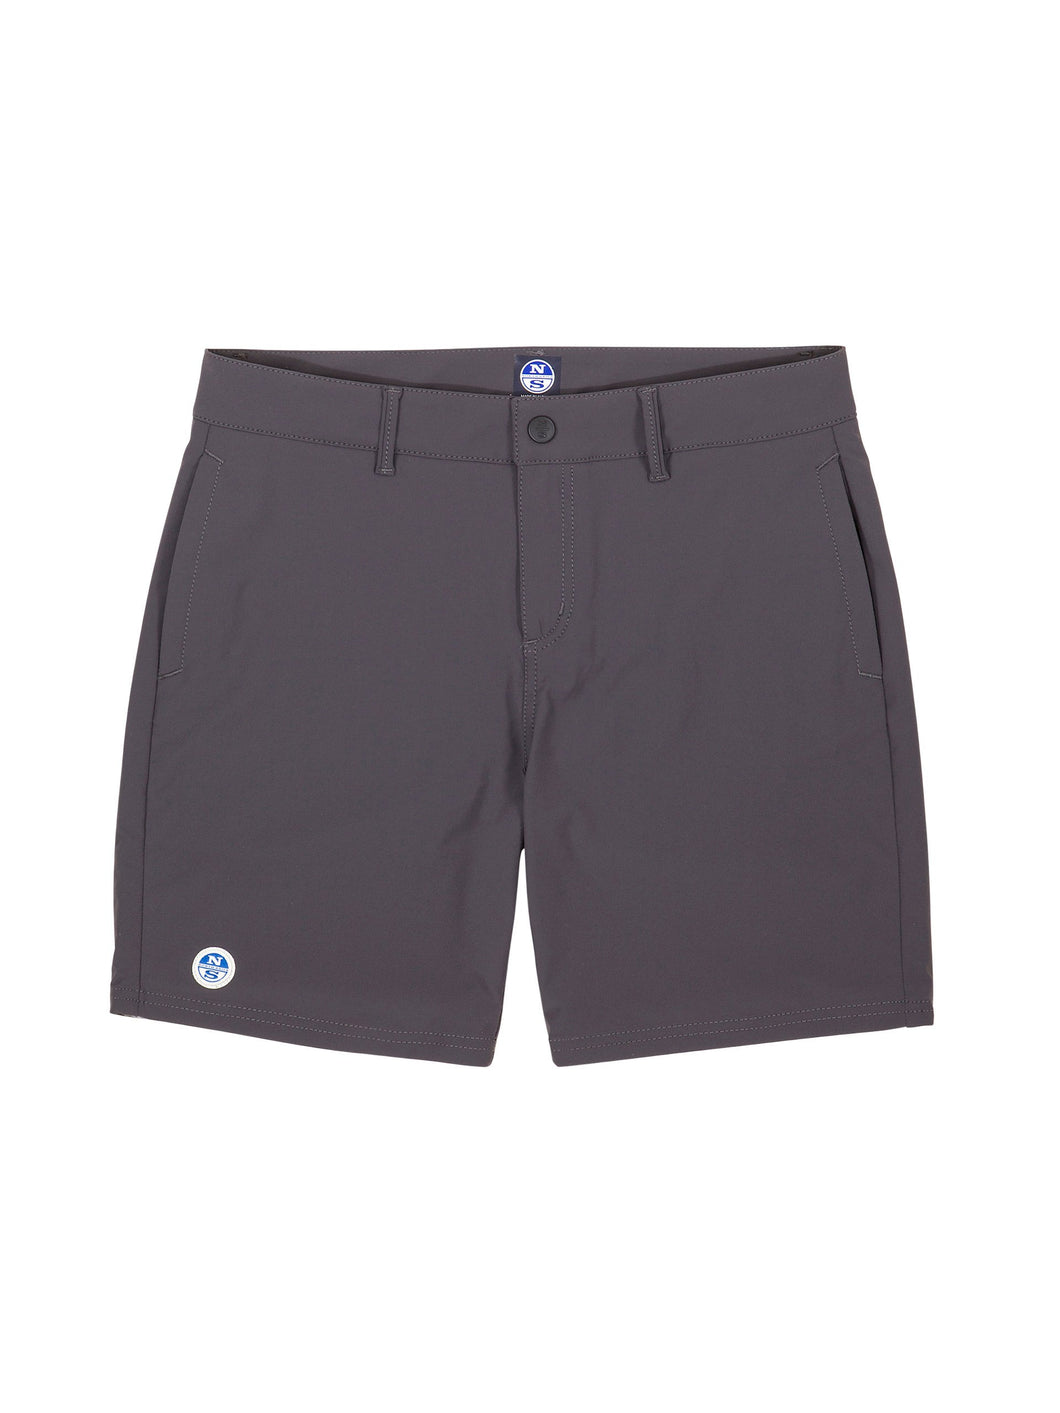 North Sails Women's Stretch Shorts